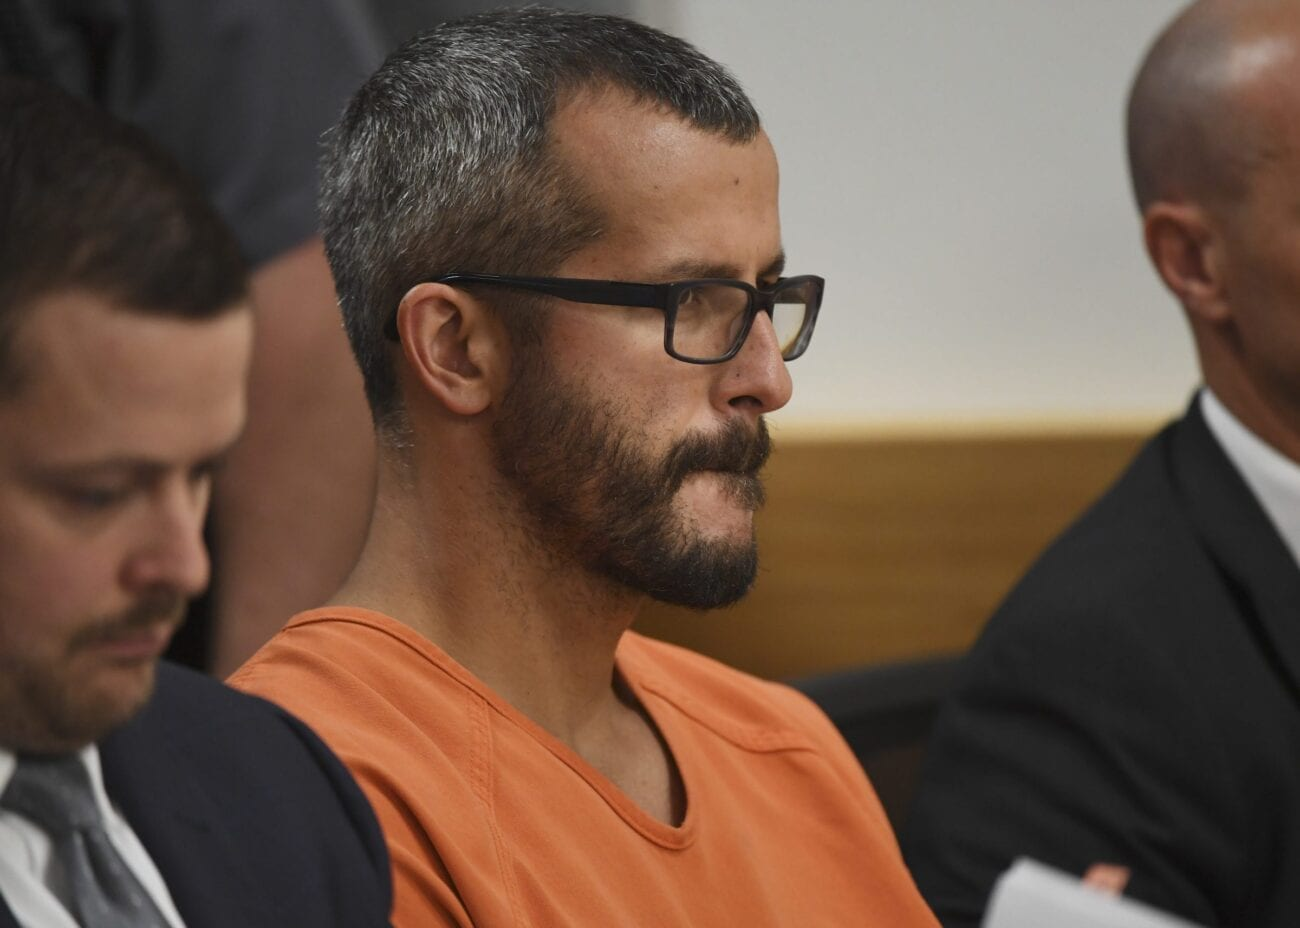 The murder of Chris Watts' pregnant wife and daughters is a modern day tragedy. Why did Watts really kill his family?